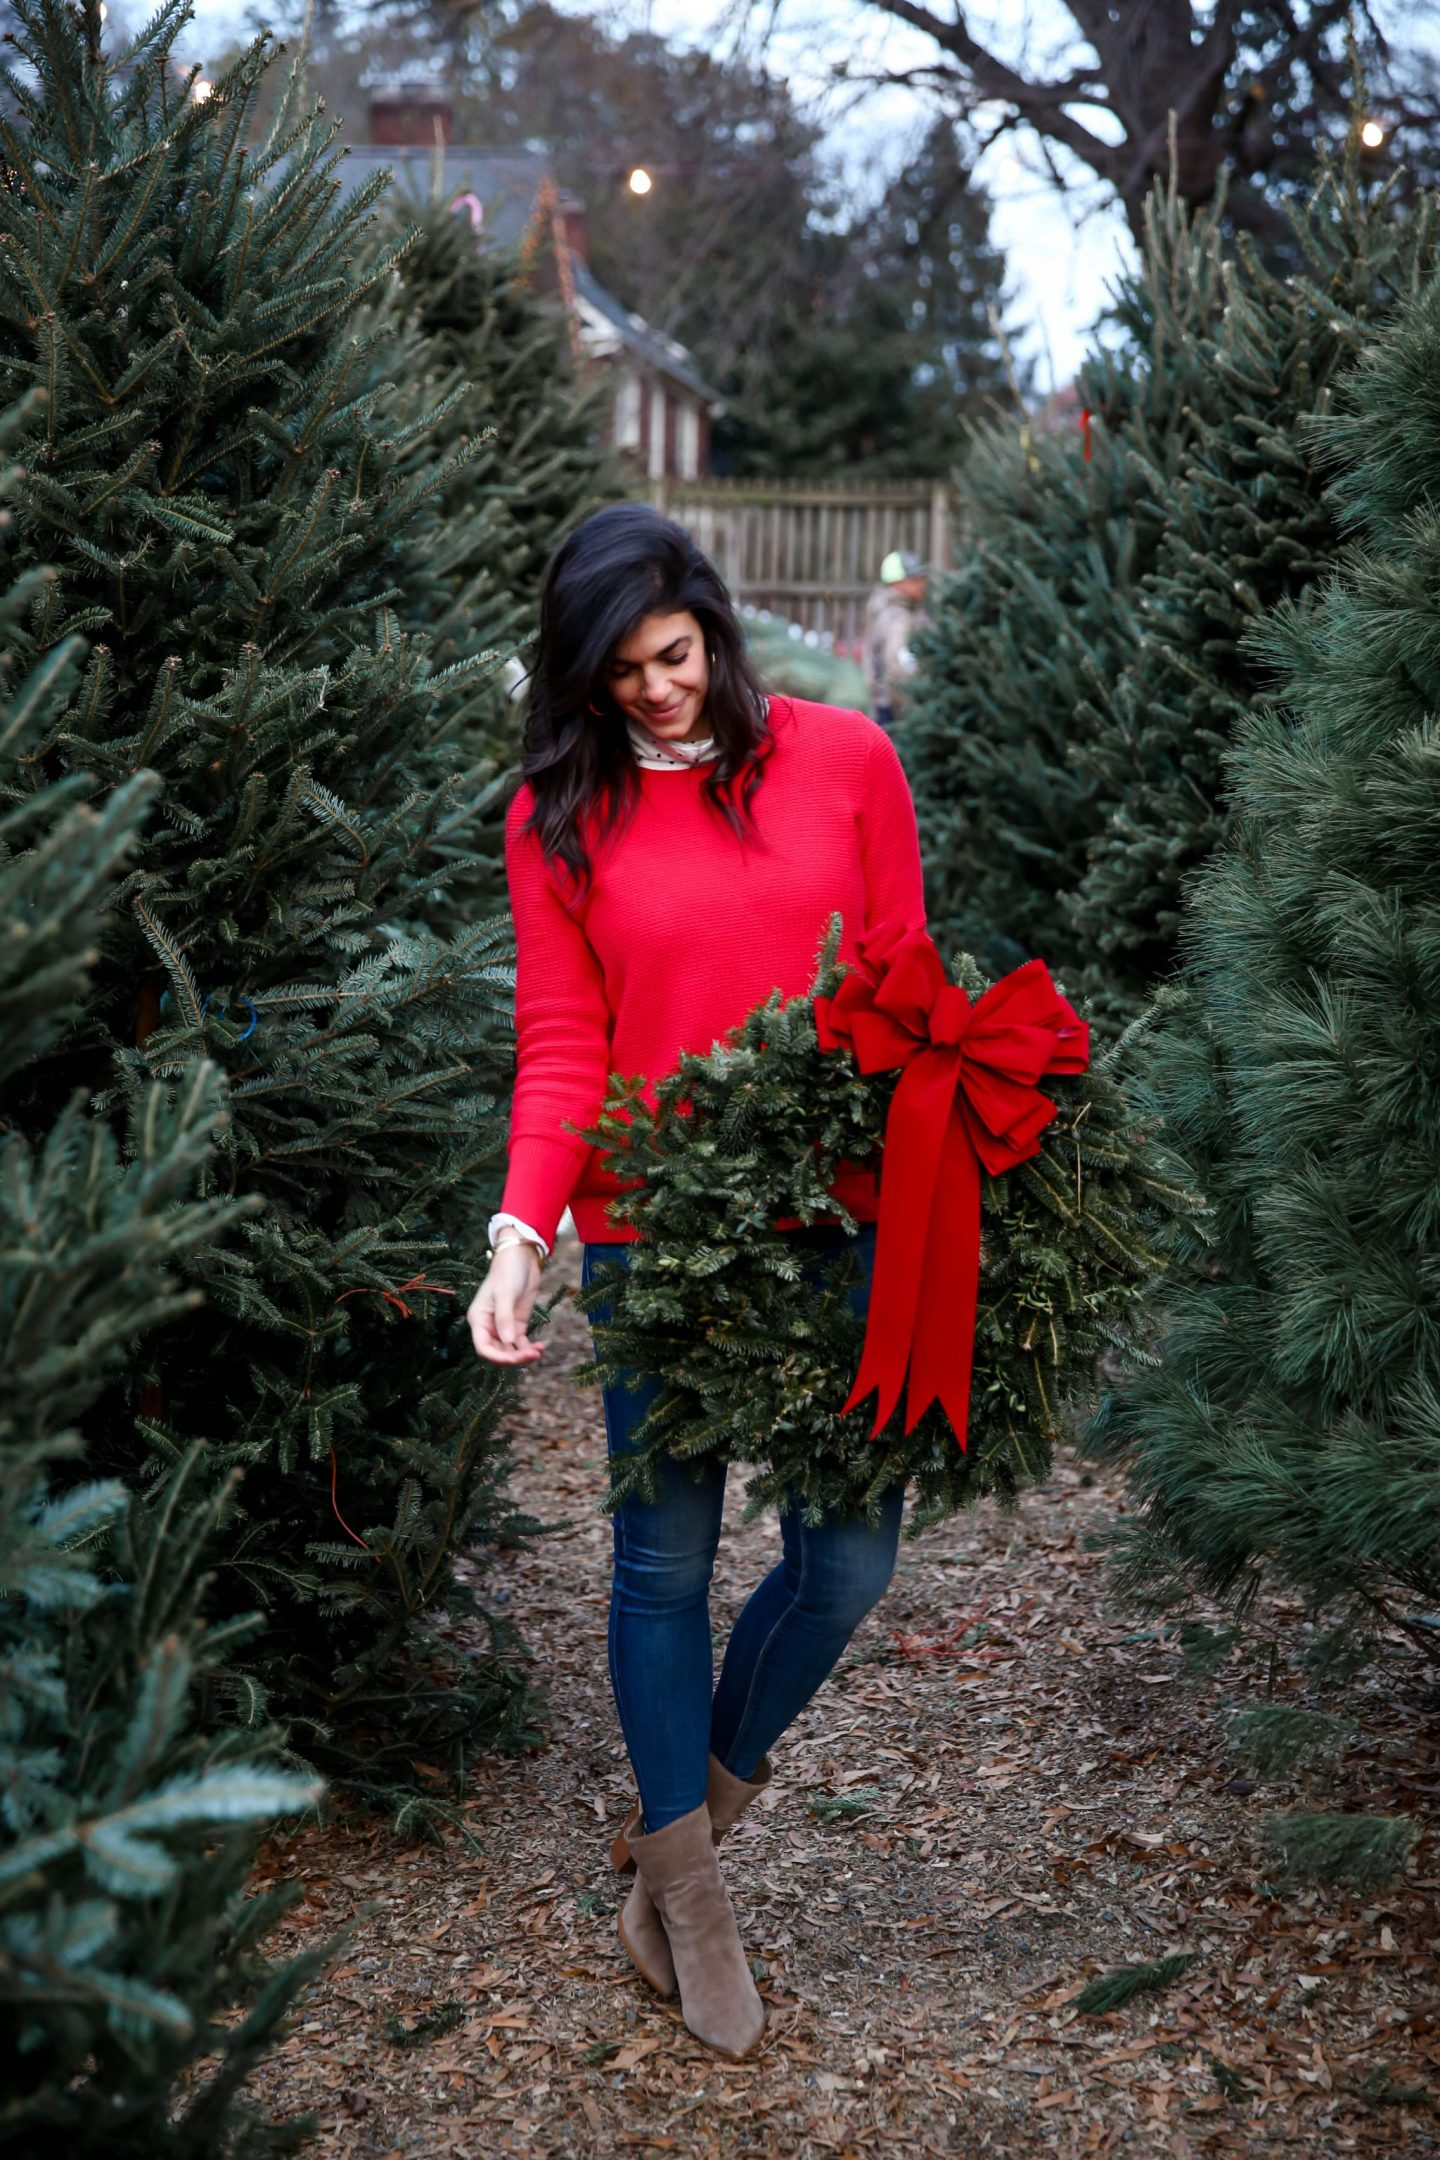 casual chic holiday style - Lauren Schwaiger Charlotte style blogger